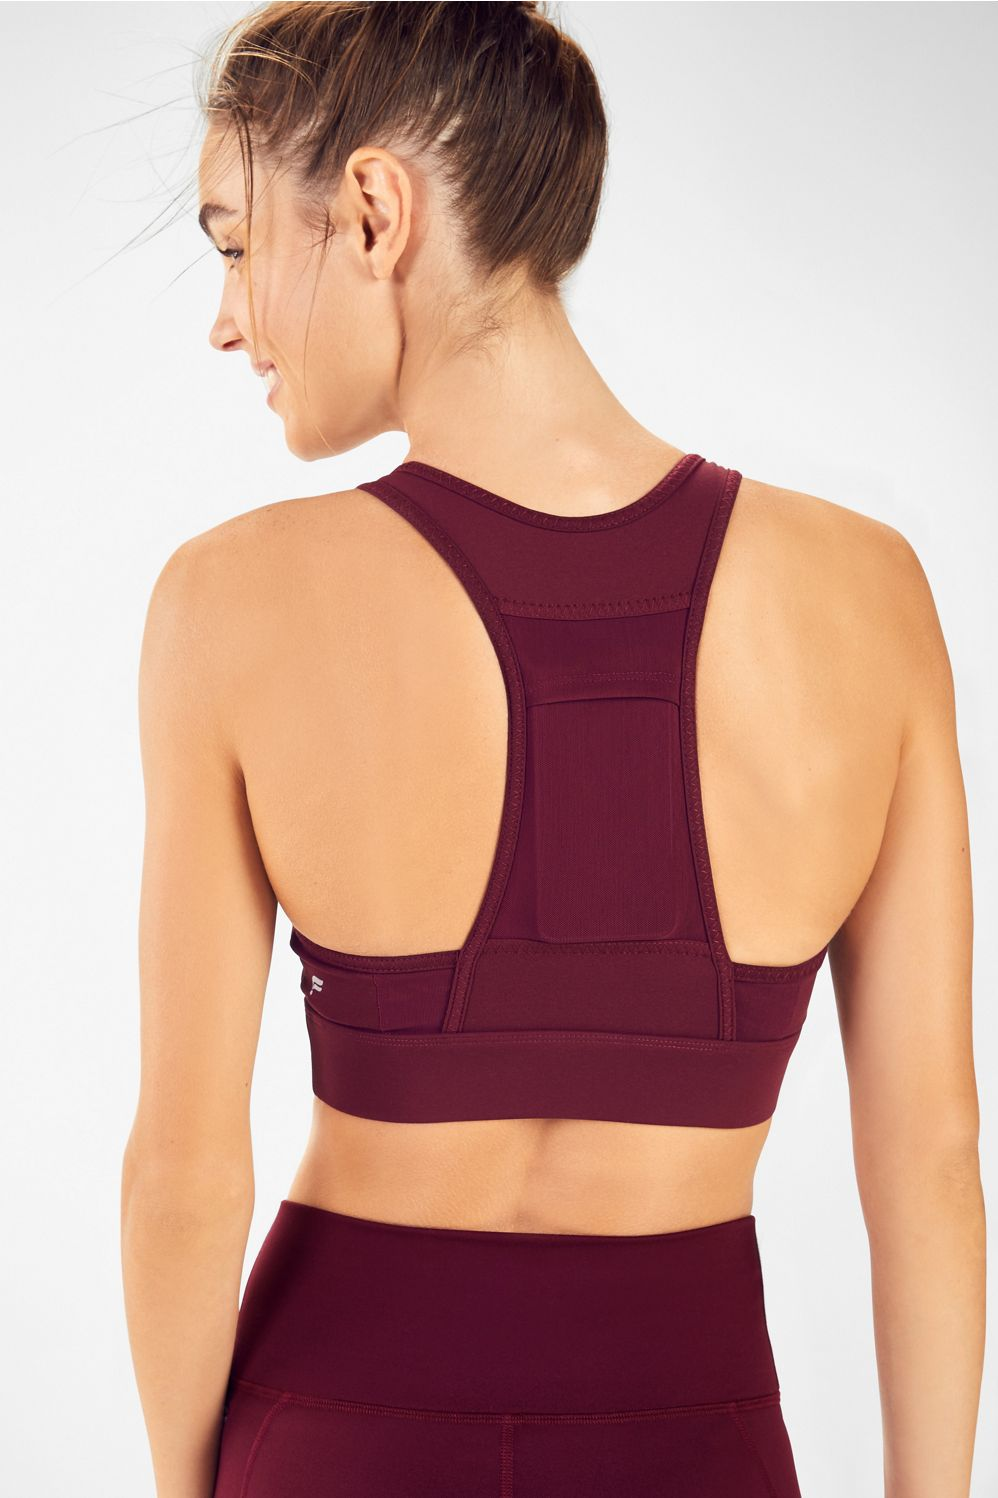 Your favorite bottoms now have a better half. Meet the Mila medium-impact sports bra, built with an external pocket to stash your card or keys.